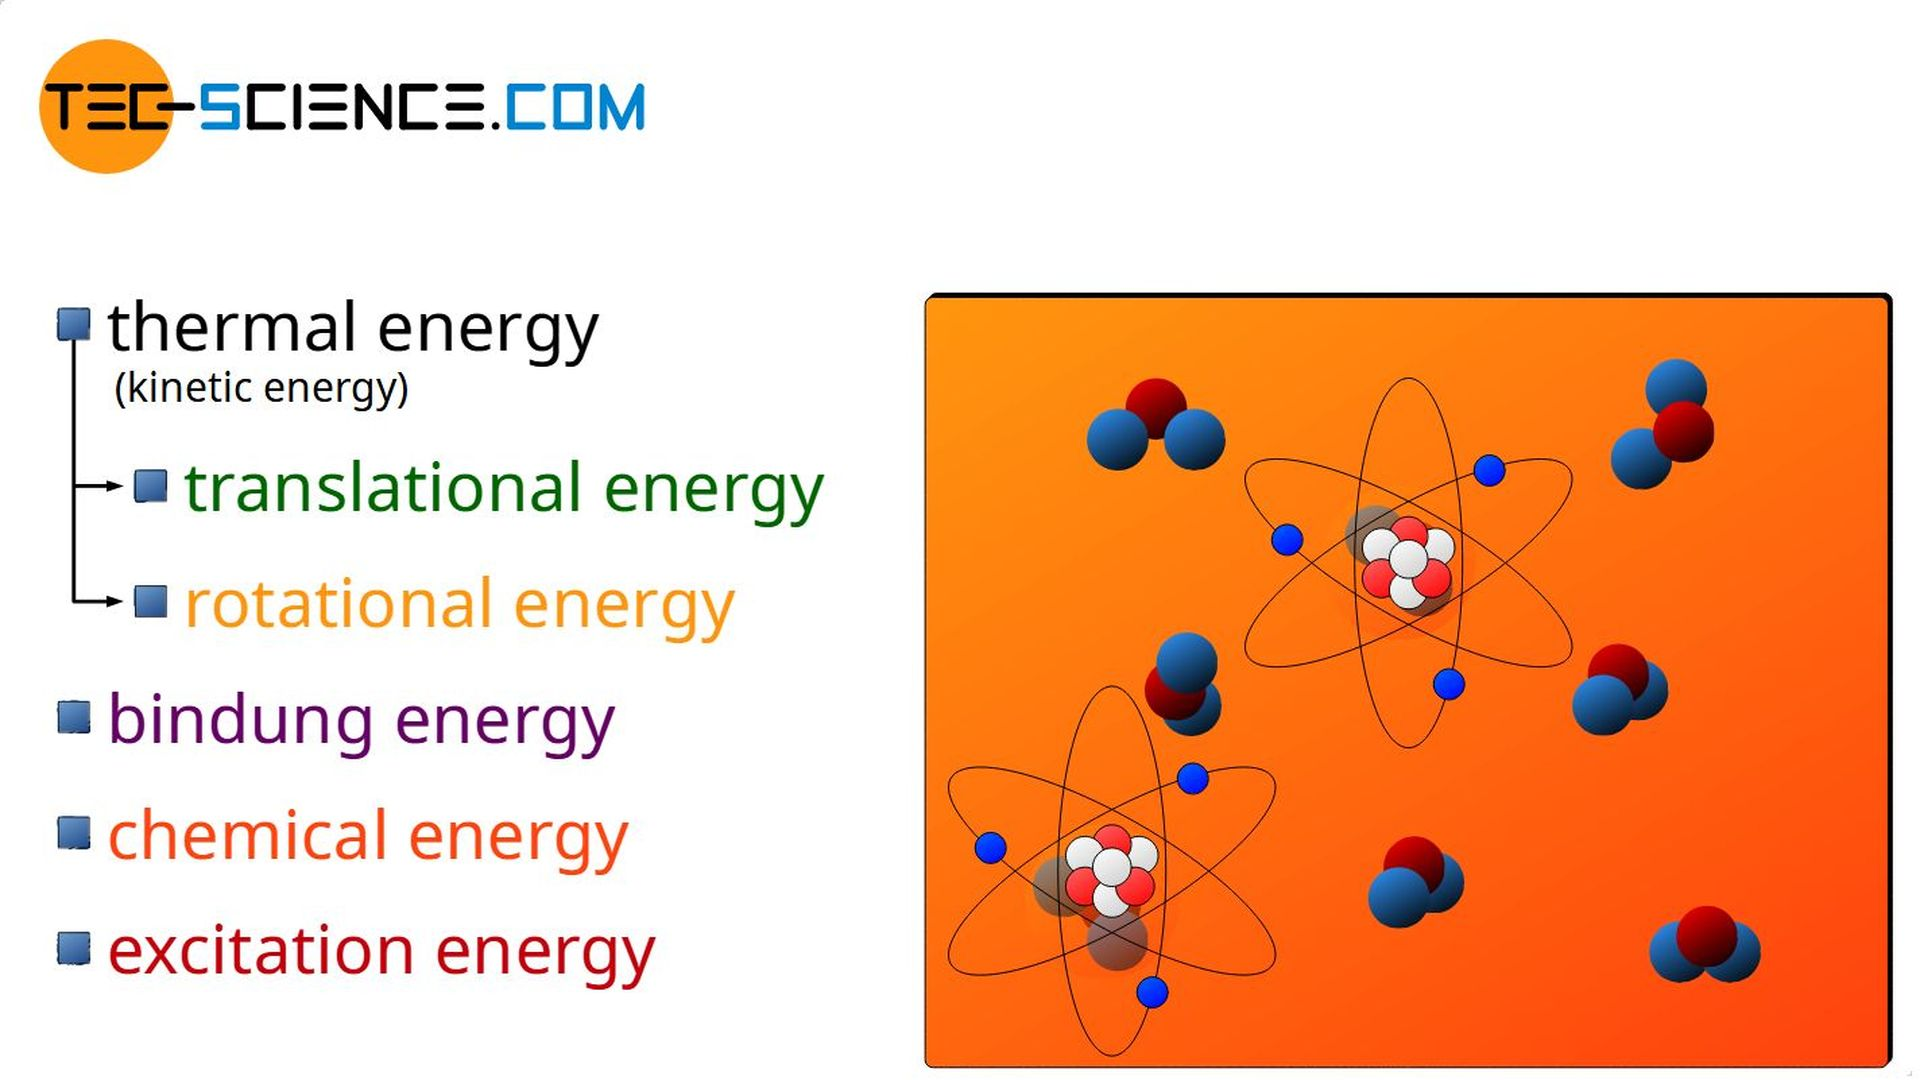 Excitation energy as part of the internal energy of a substance